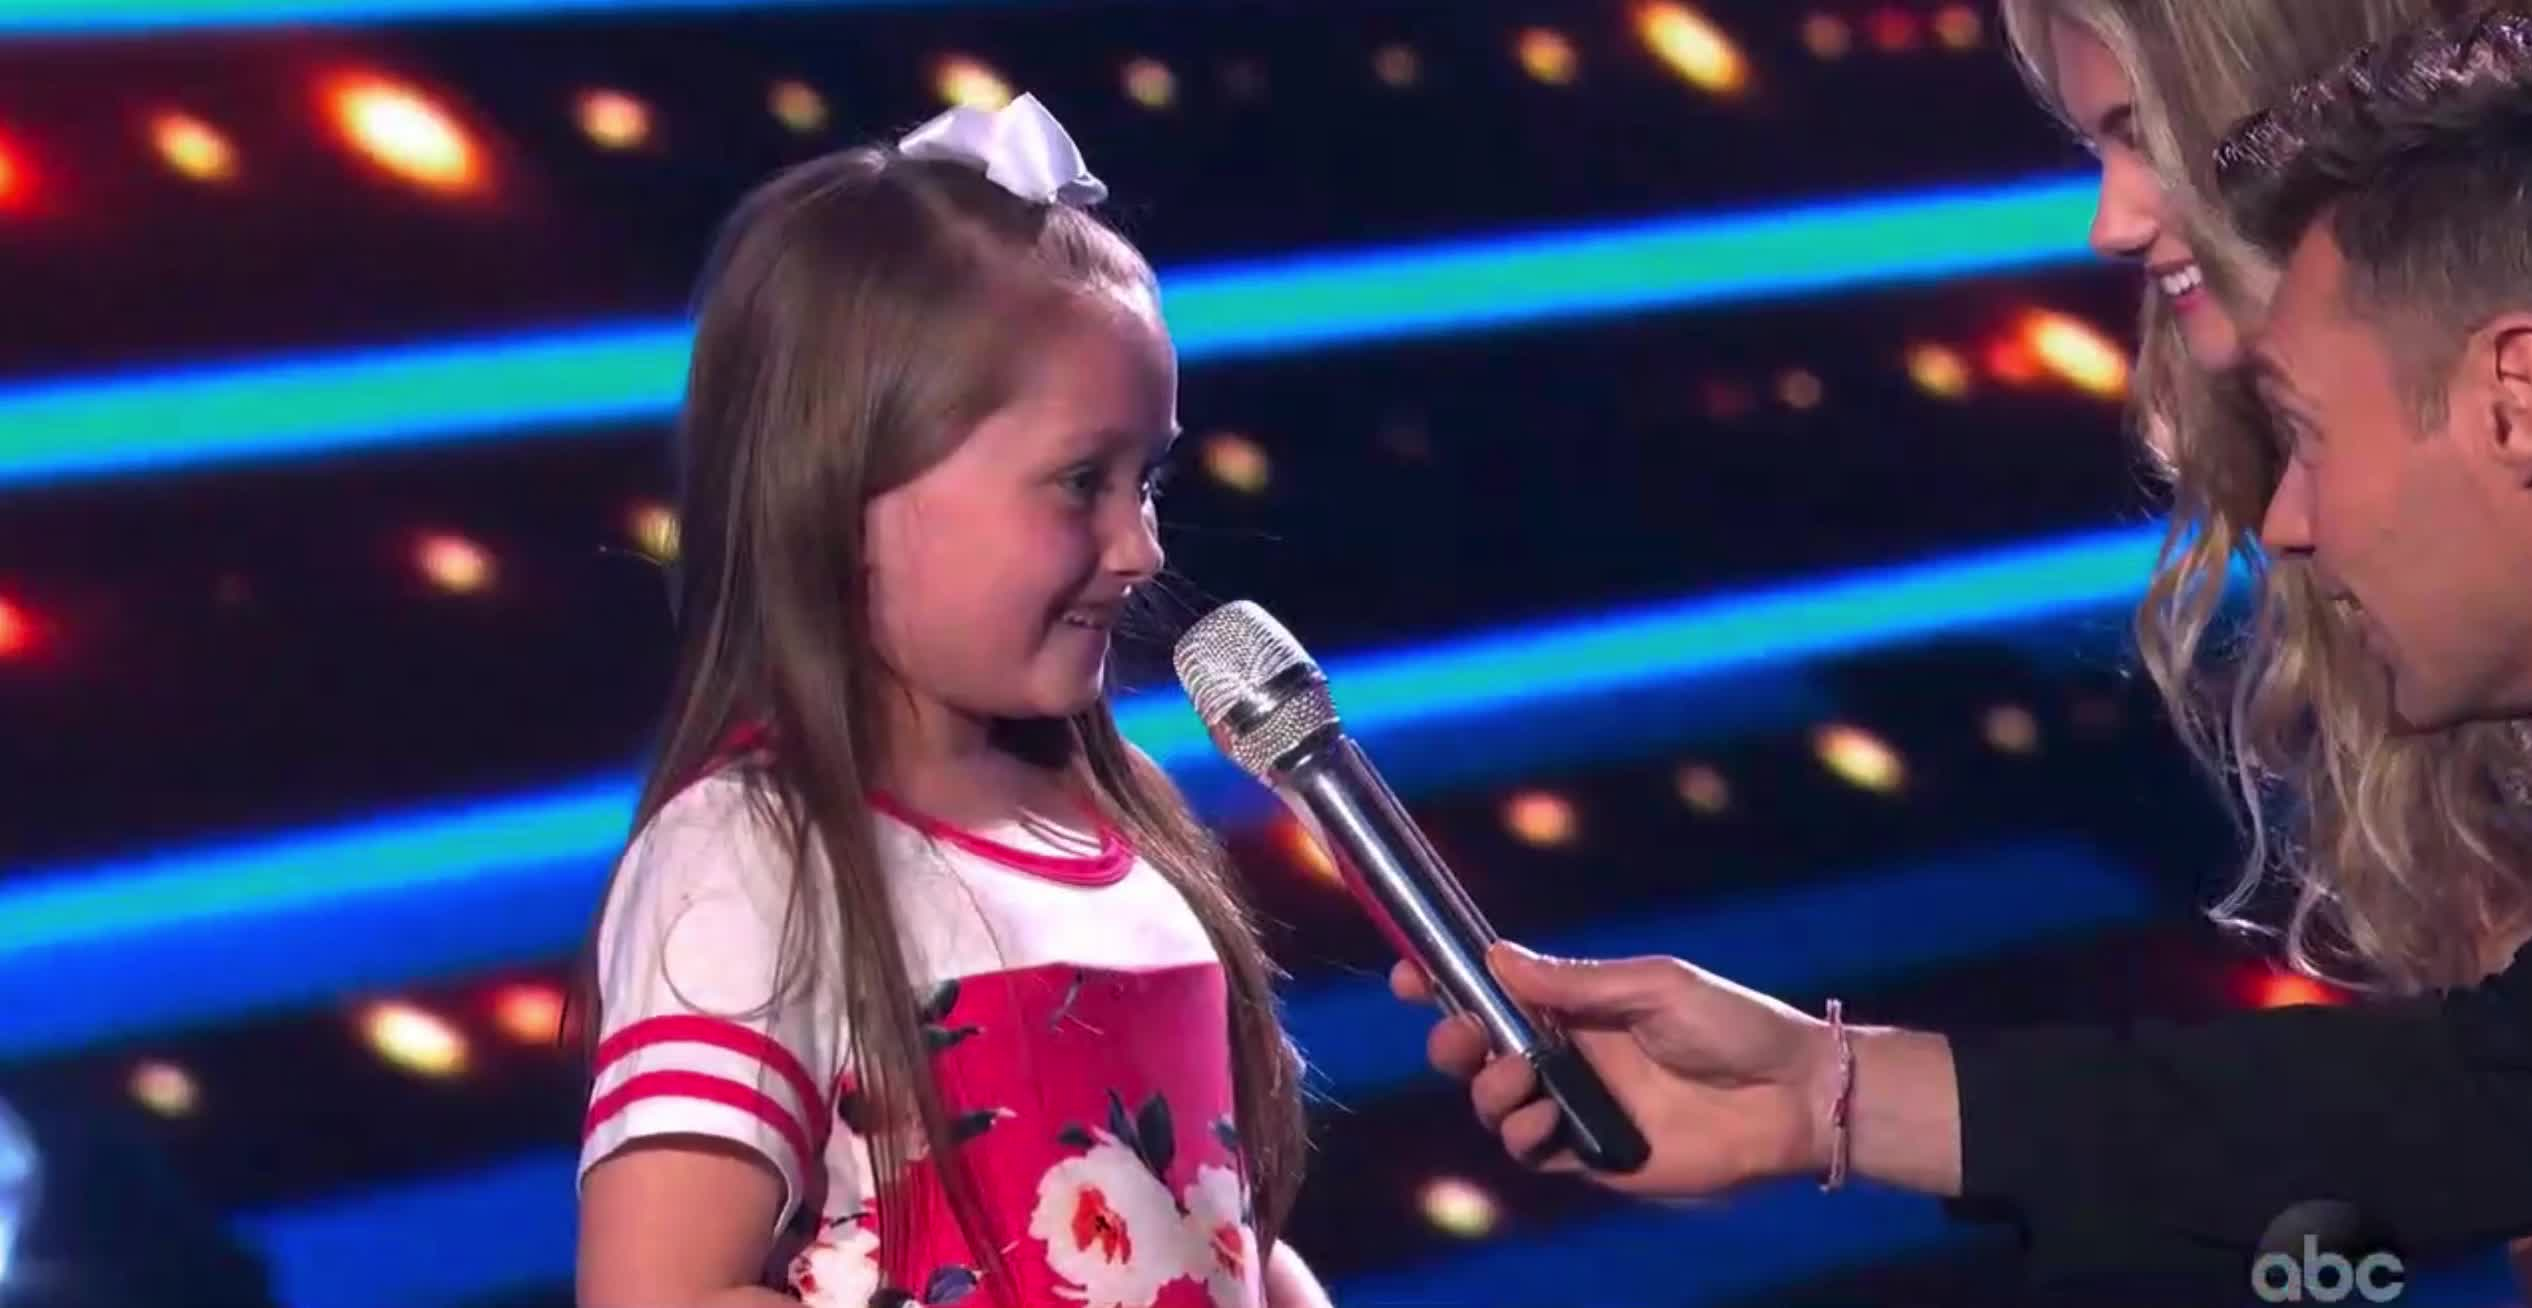 american idol, american idol season 17, americanidol, cute, happy, katy perry, lionel richie, luke bryan, riley thompson, ryan seacrest, season 17, American Idol Riley Happy Little Sister GIFs